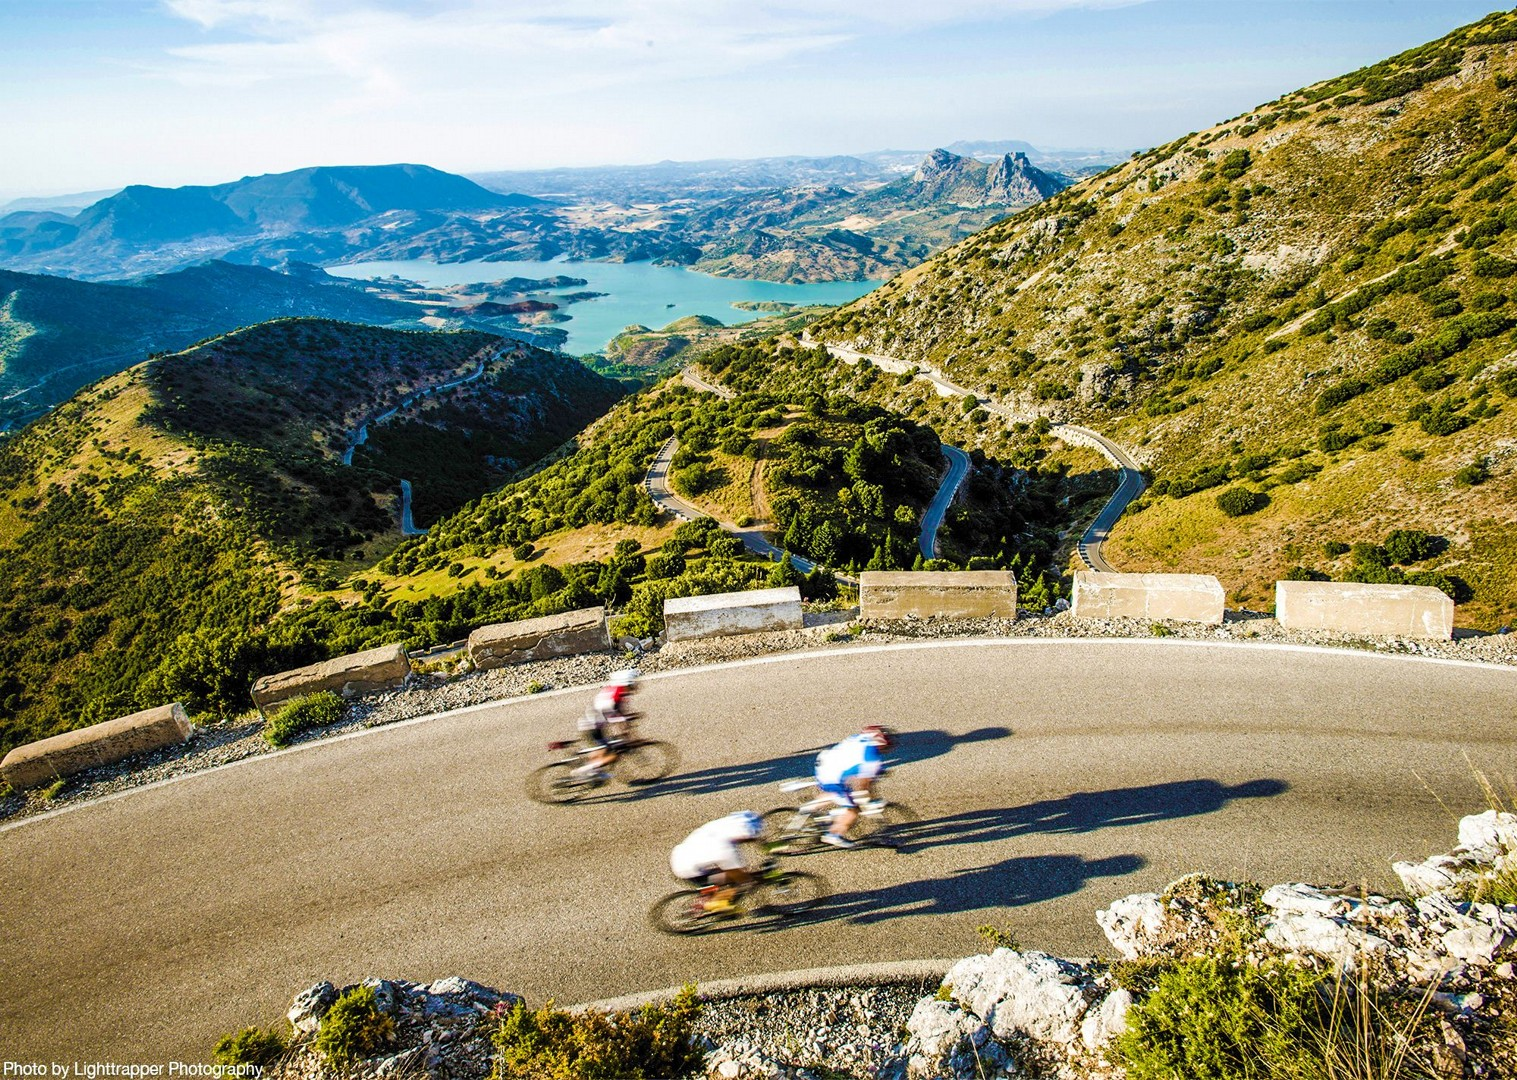 puerto-de-las-palomas-road-cycling-climb-challenge.jpg - Southern Spain - Roads of Ronda - Self-Guided Road Cycling Holiday - Road Cycling